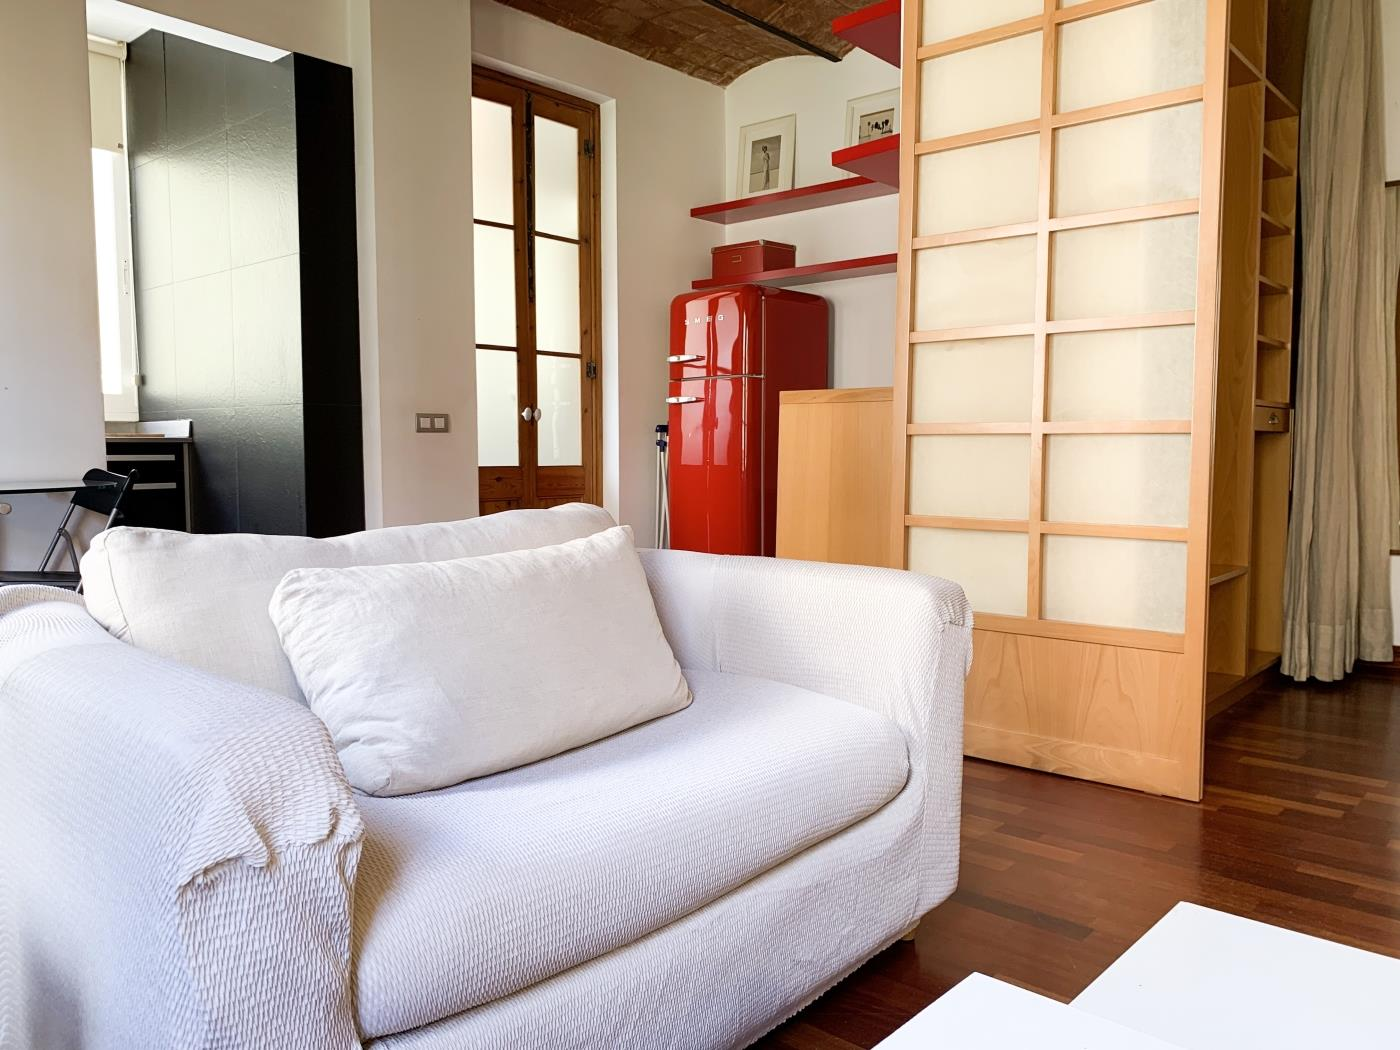 Great apartment in the best area in Gràcia near the city centre for 2 - My Space Barcelona Appartementen